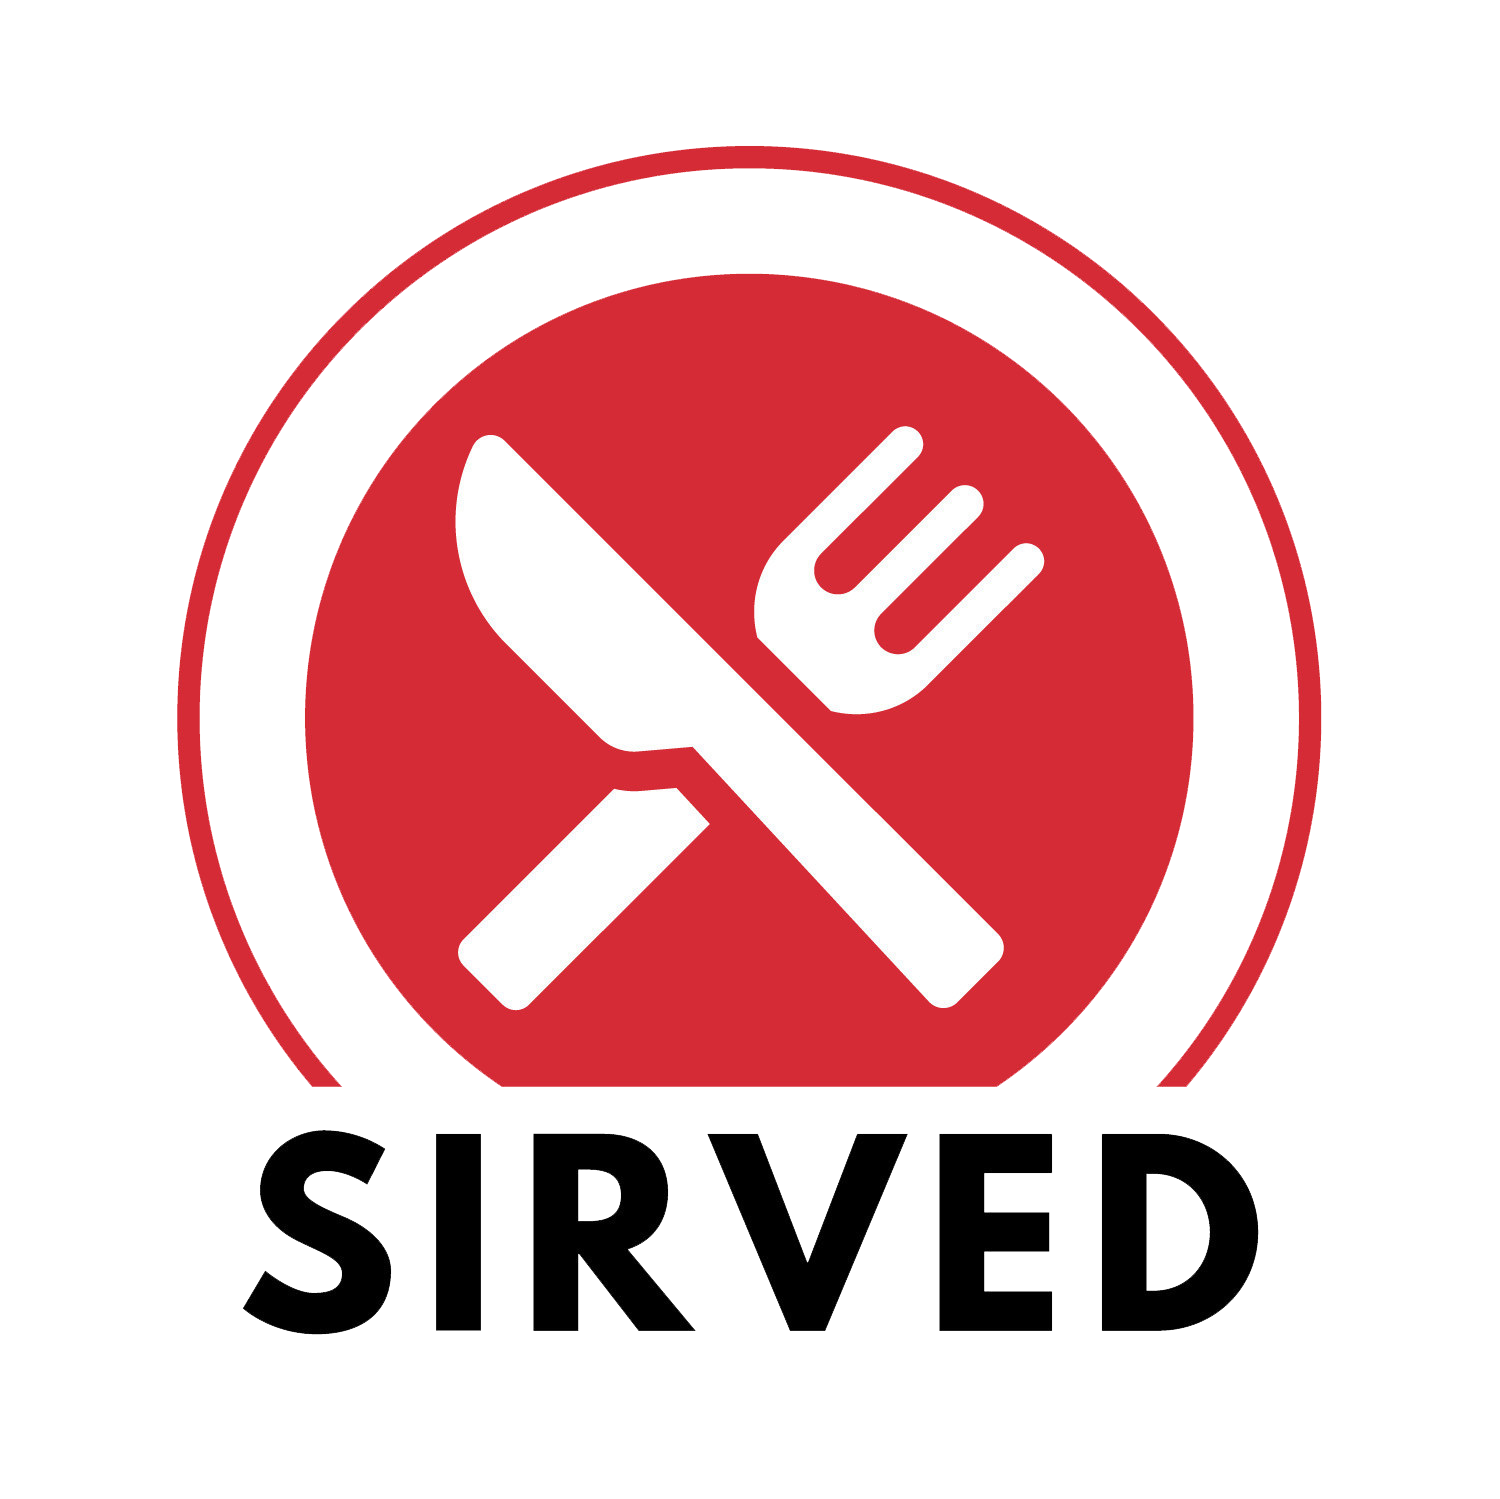 https://www.sirved.com/